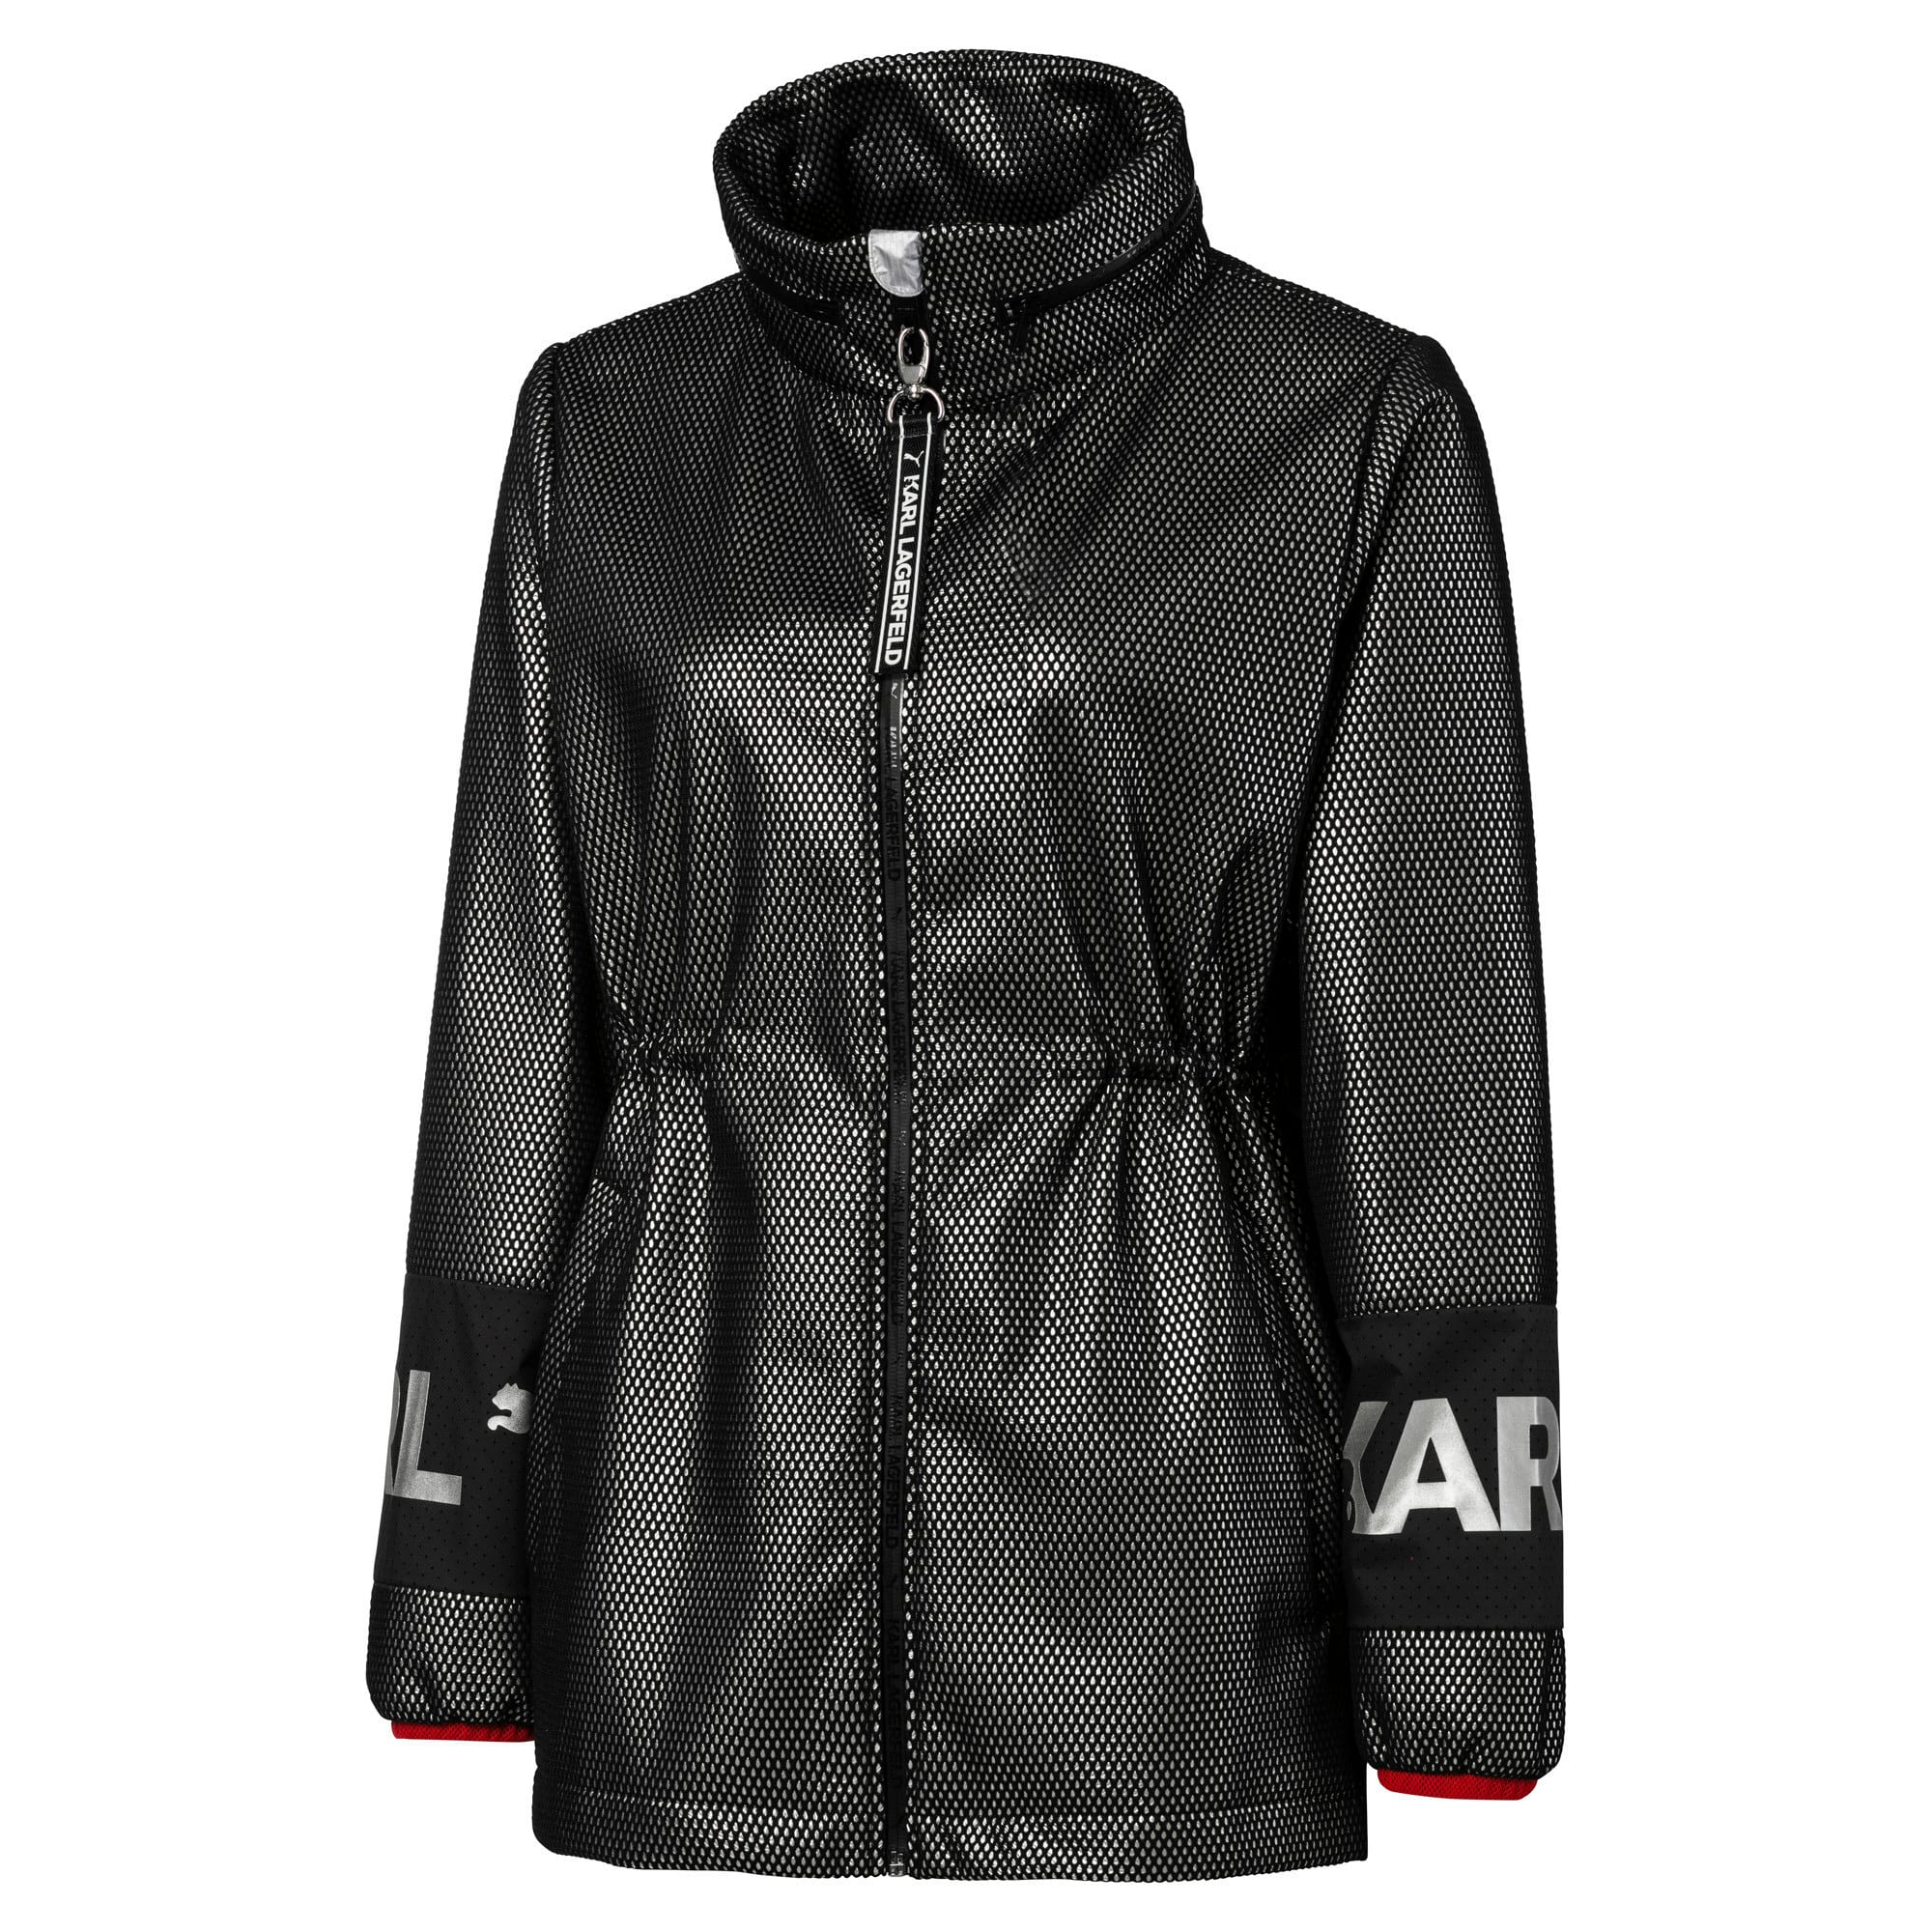 Thumbnail 8 of PUMA x KARL LAGERFELD Damen Outerwear Jacke, Puma Black, medium